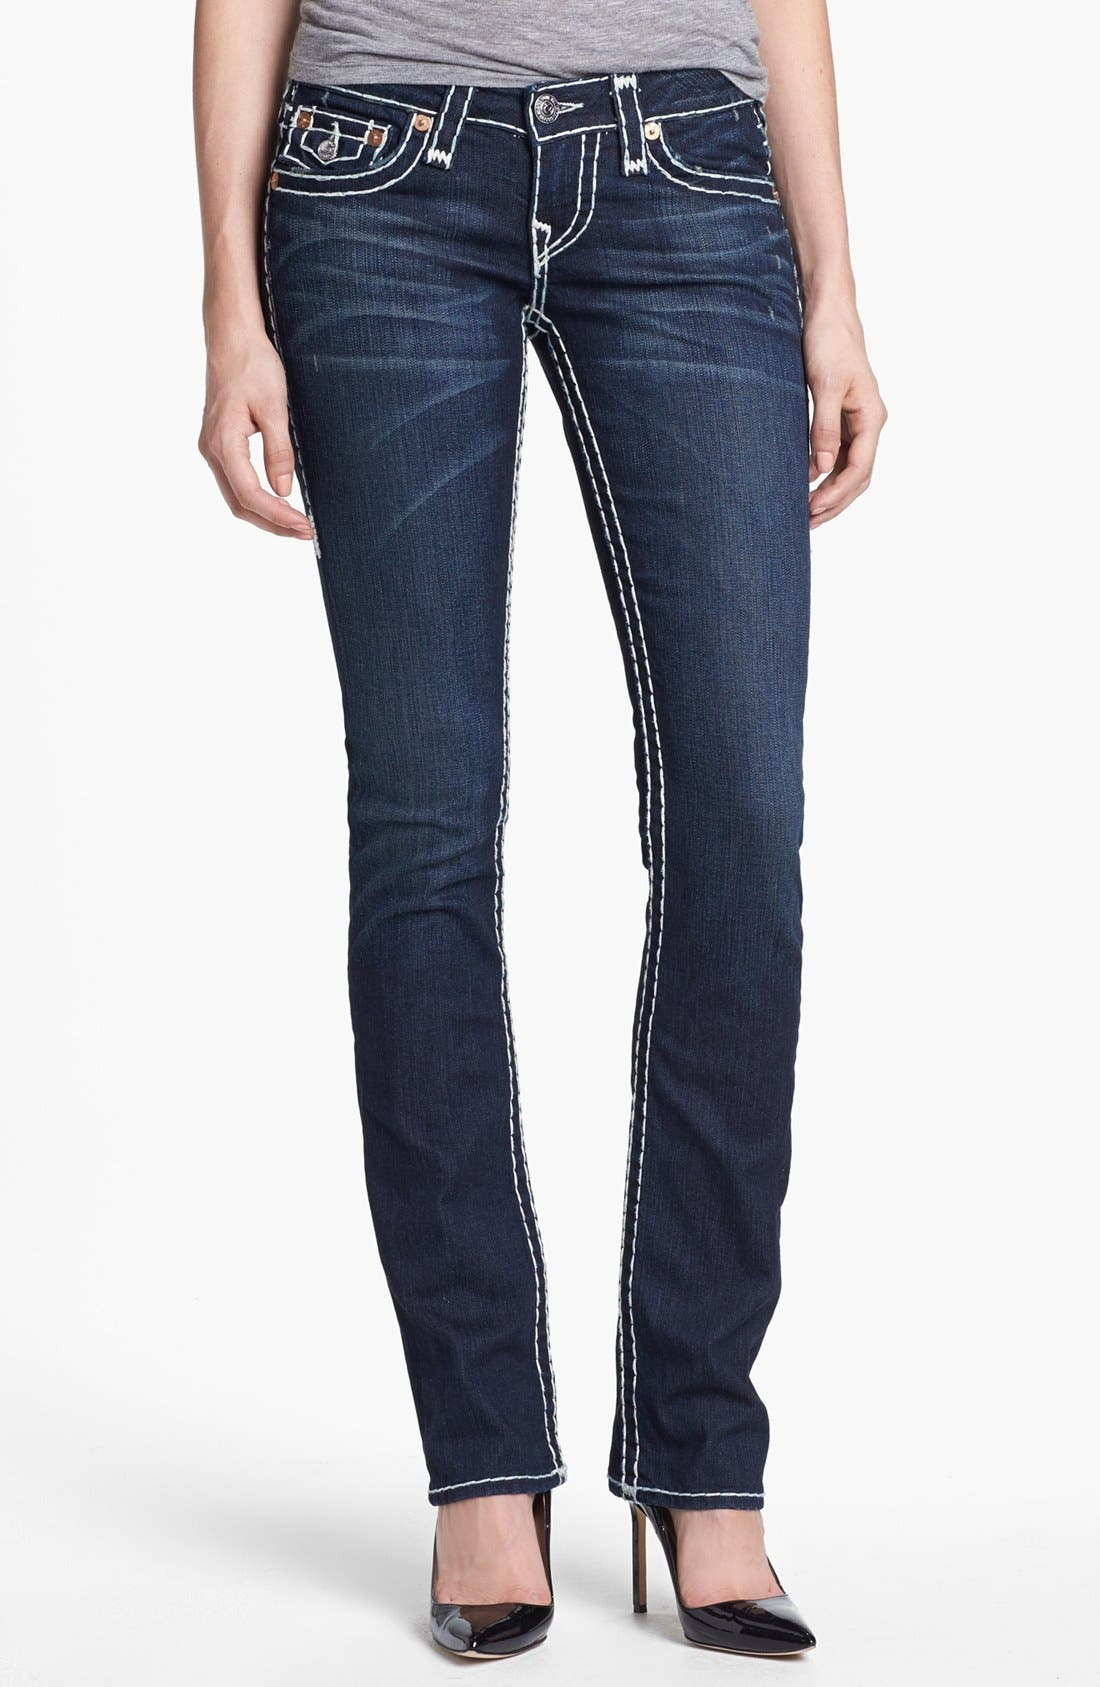 Alternate Image 1 Selected - True Religion Brand Jeans 'Billy - Super T' Straight Leg Jeans (Rollingwood)